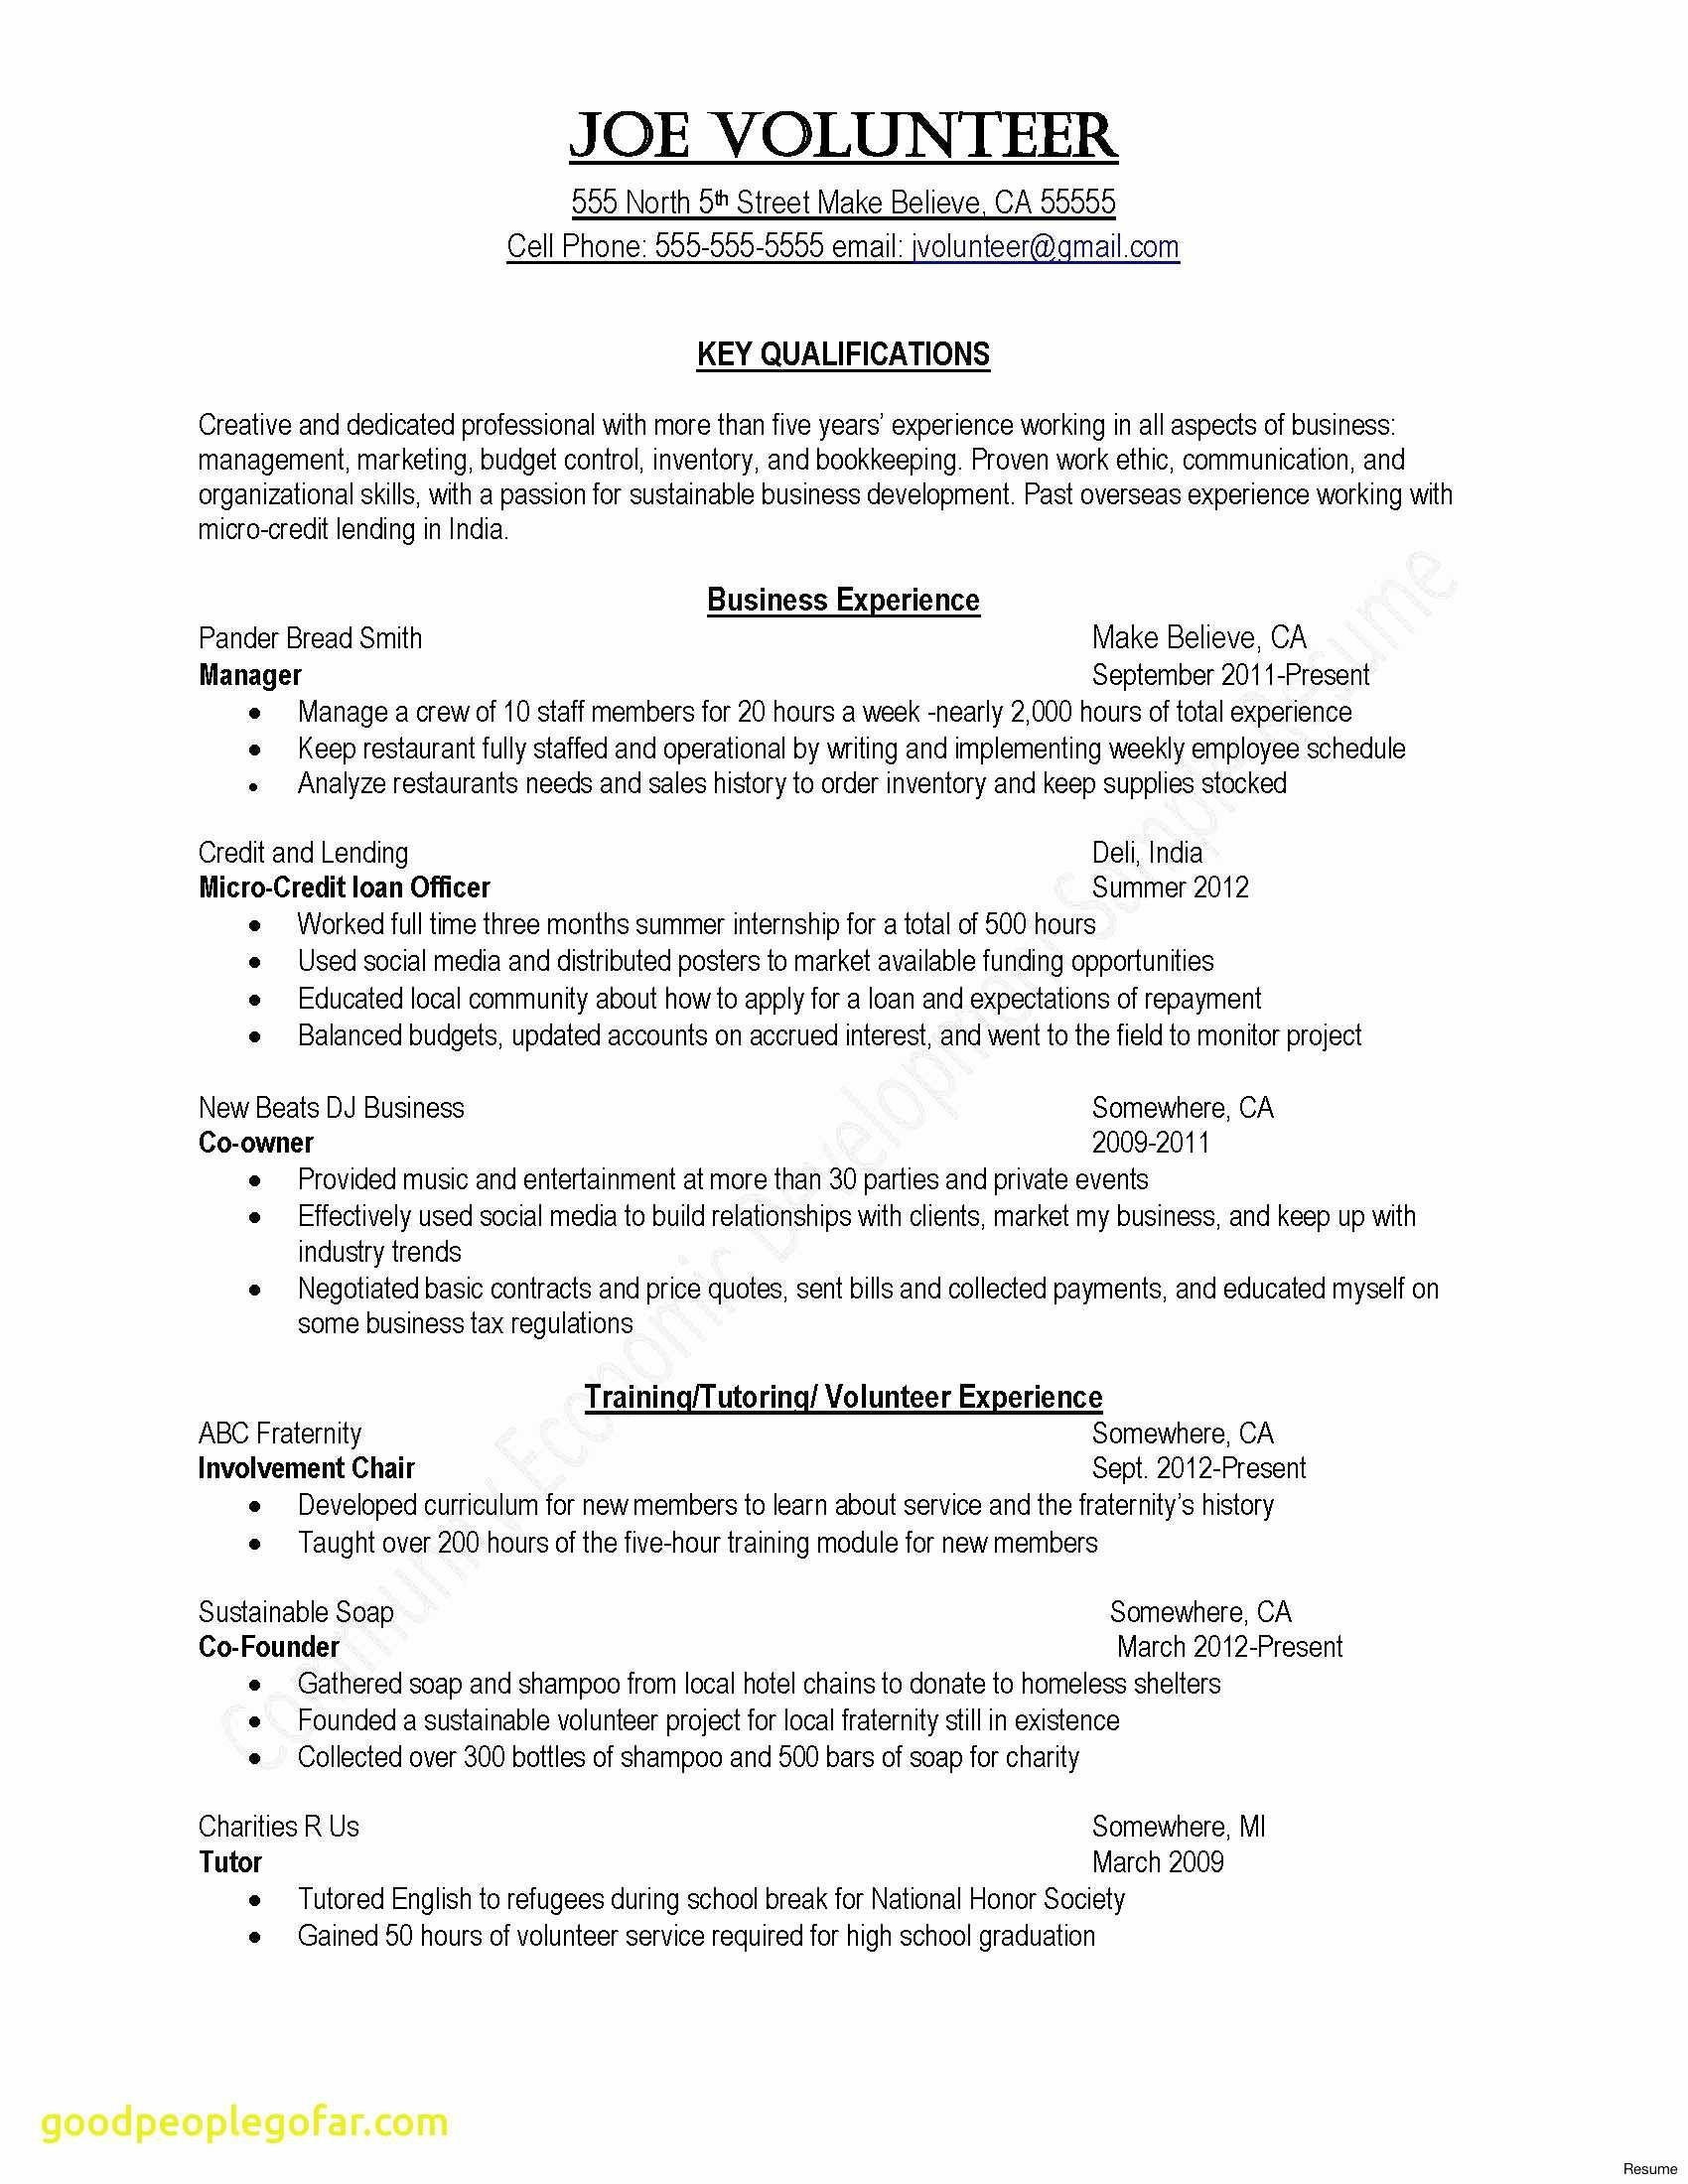 Resume Help Near Me - Key Words for Resumes Luxury Resume About Me Inspirational Luxury